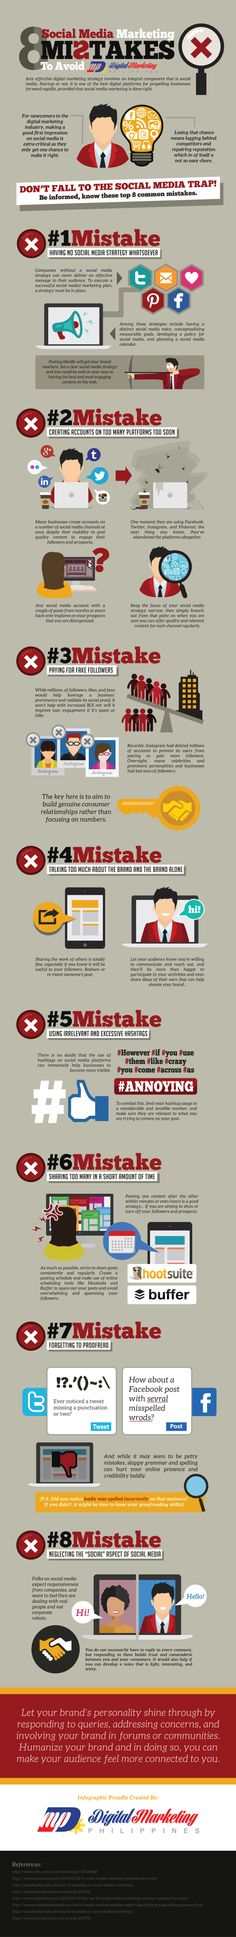 8 Social Media Mistakes That Will Destroy Your Online Reputation #Infographic